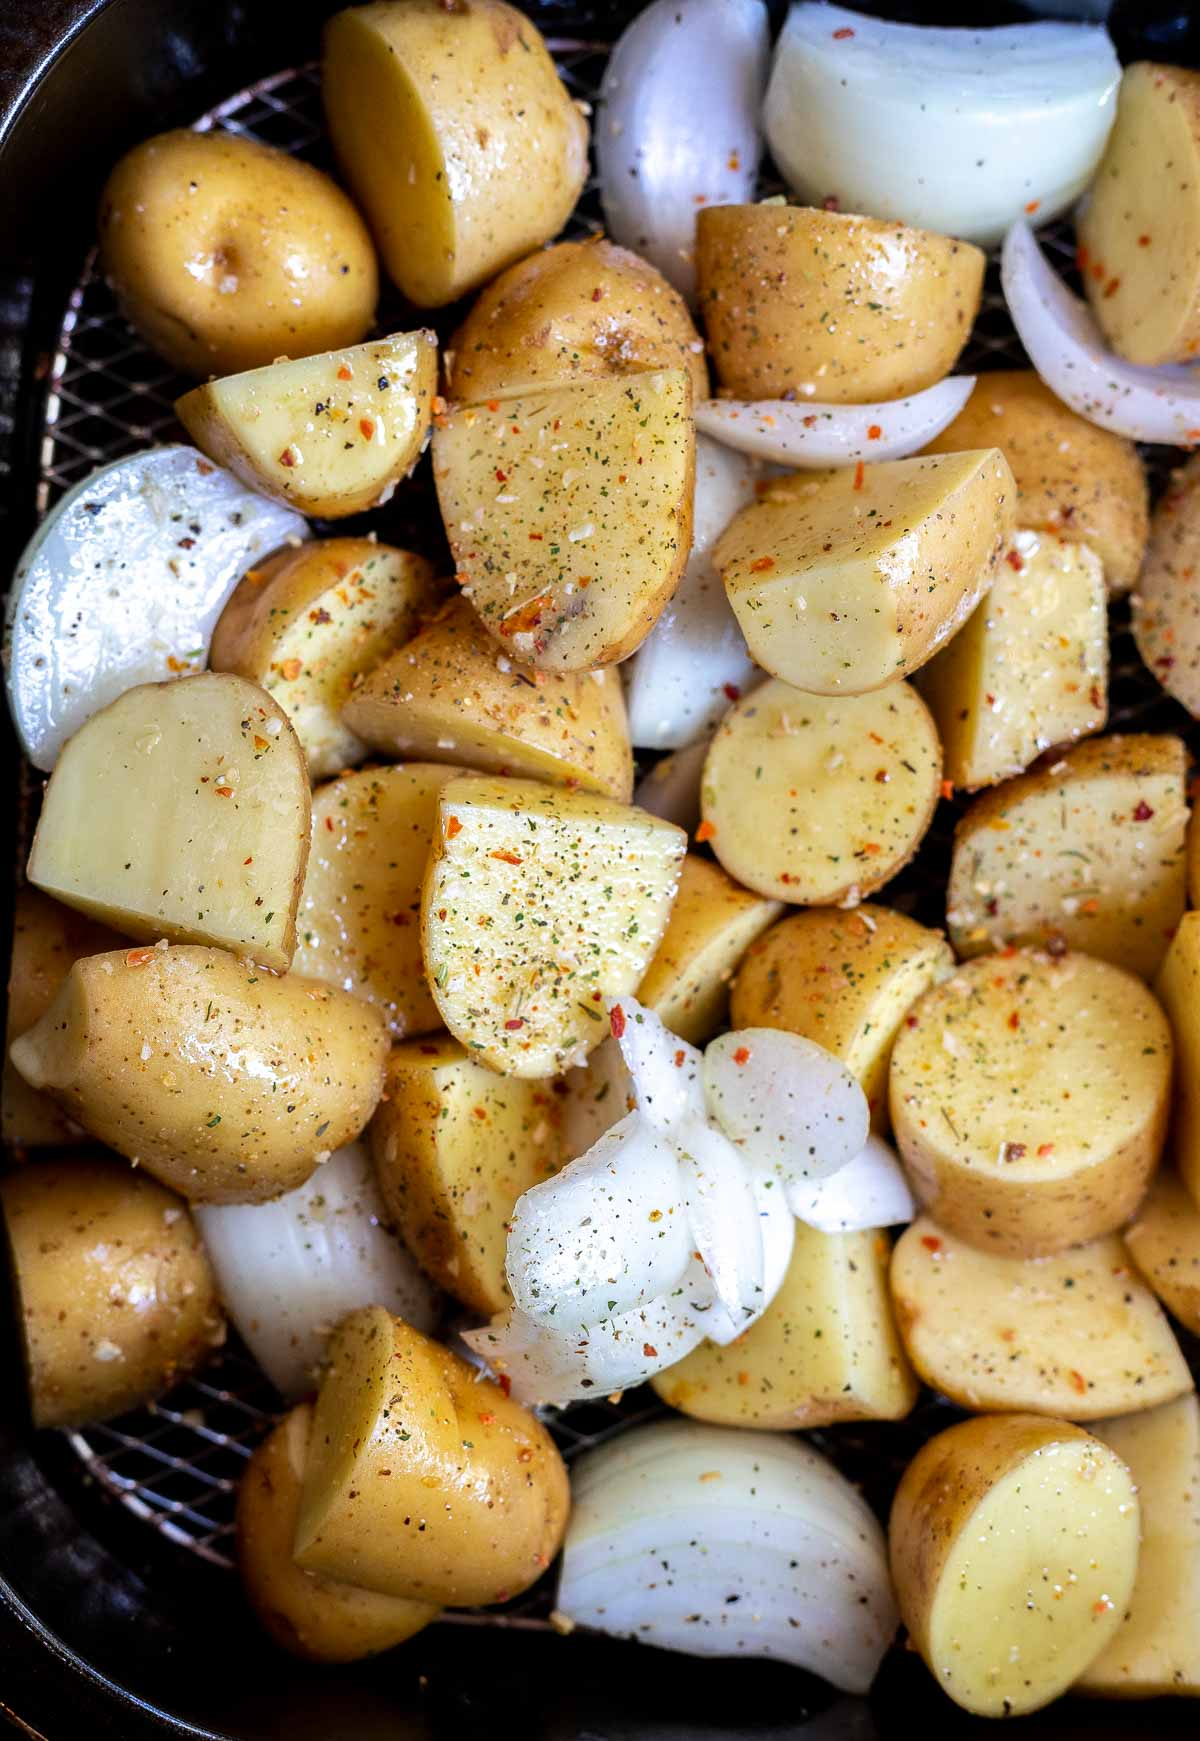 uncooked potatoes and onions in air fryer basket